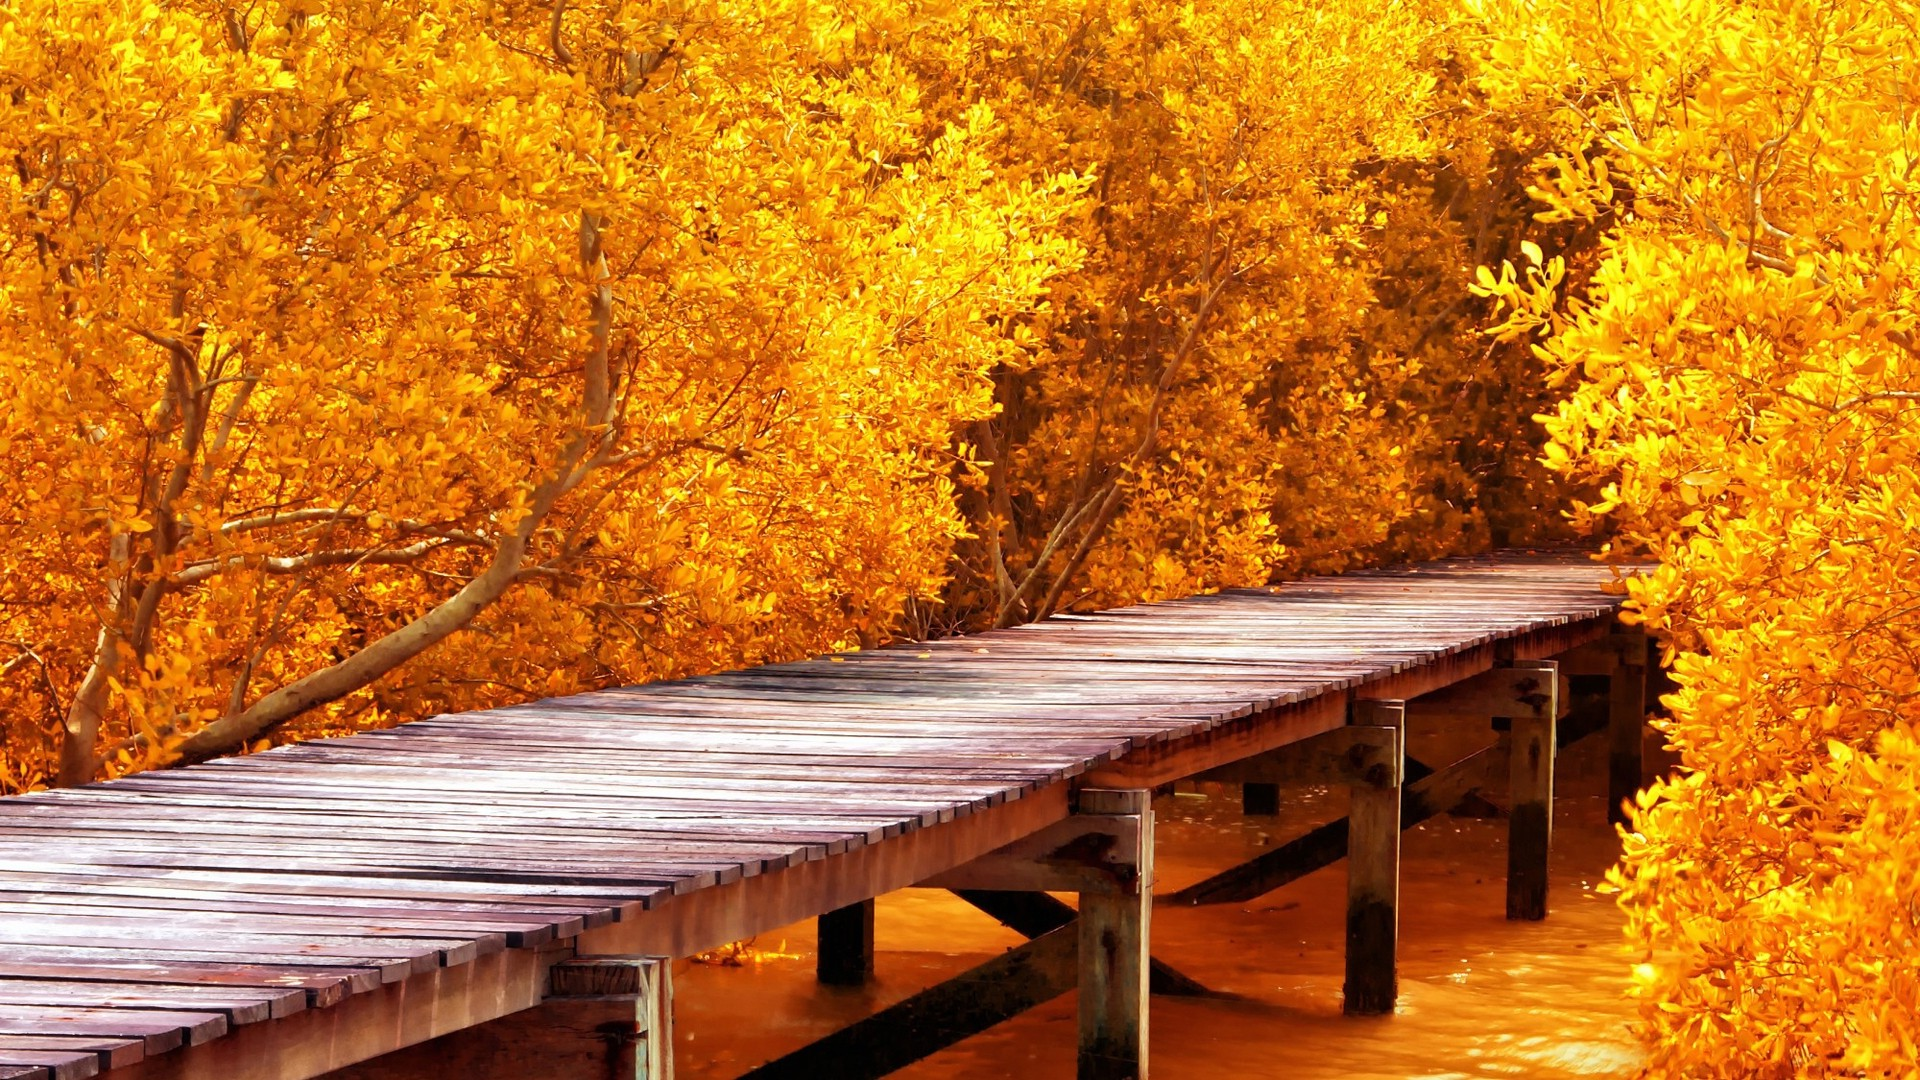 Fall Wallpaper 1920x1080 Nature Landscape Pier Water Wooden Surface Trees